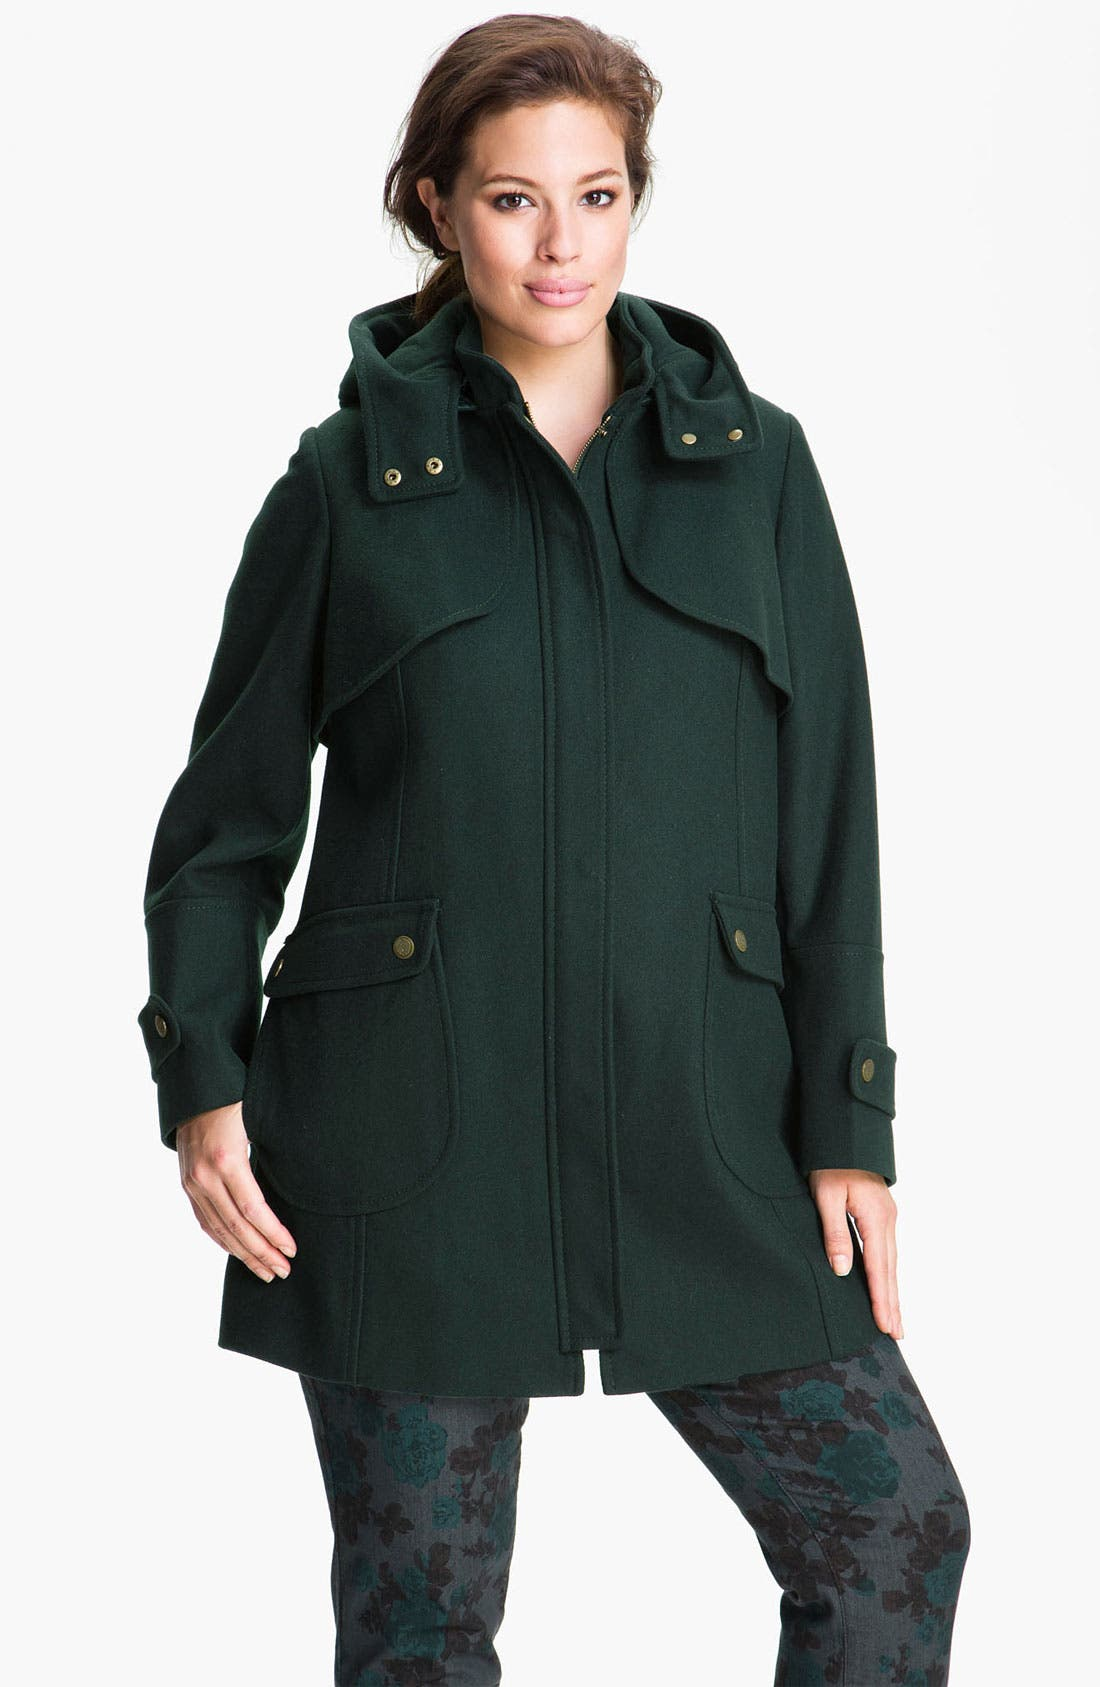 Main Image - Vince Camuto Wool Blend Jacket with Detachable Hood (Plus)